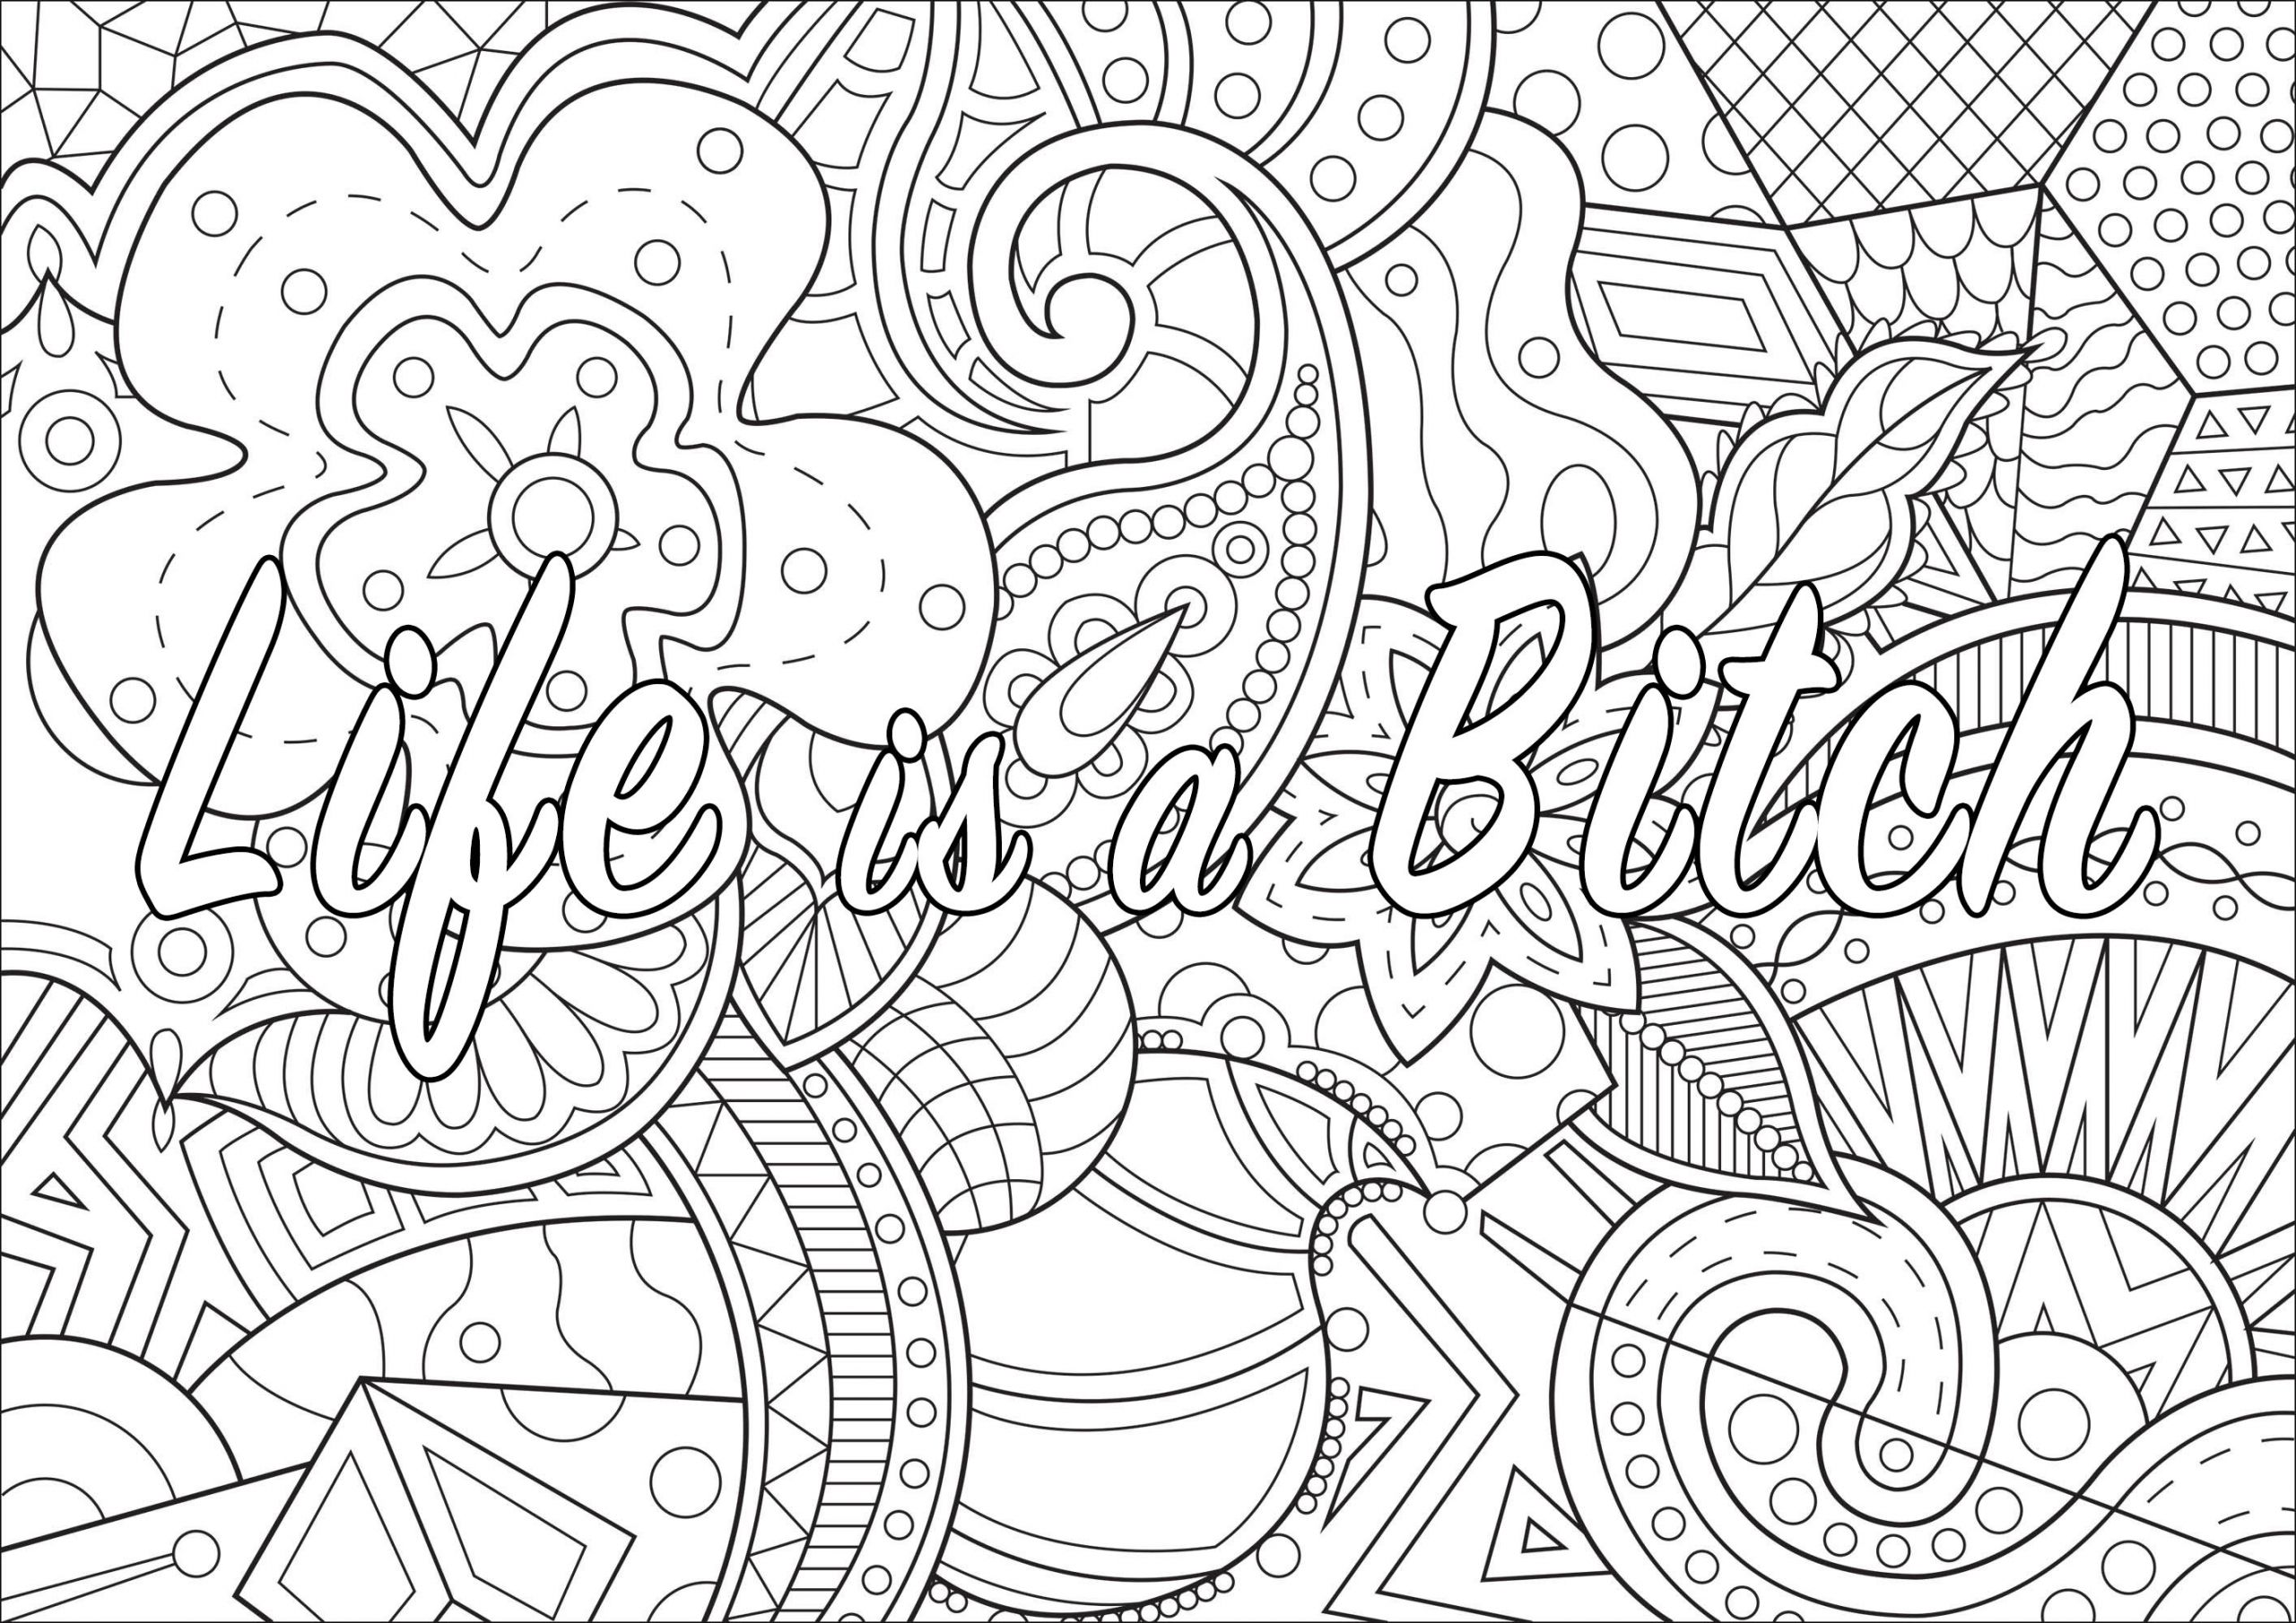 Adult Swear Coloring Pages  A Coloring Page santaclarapueb ibrary